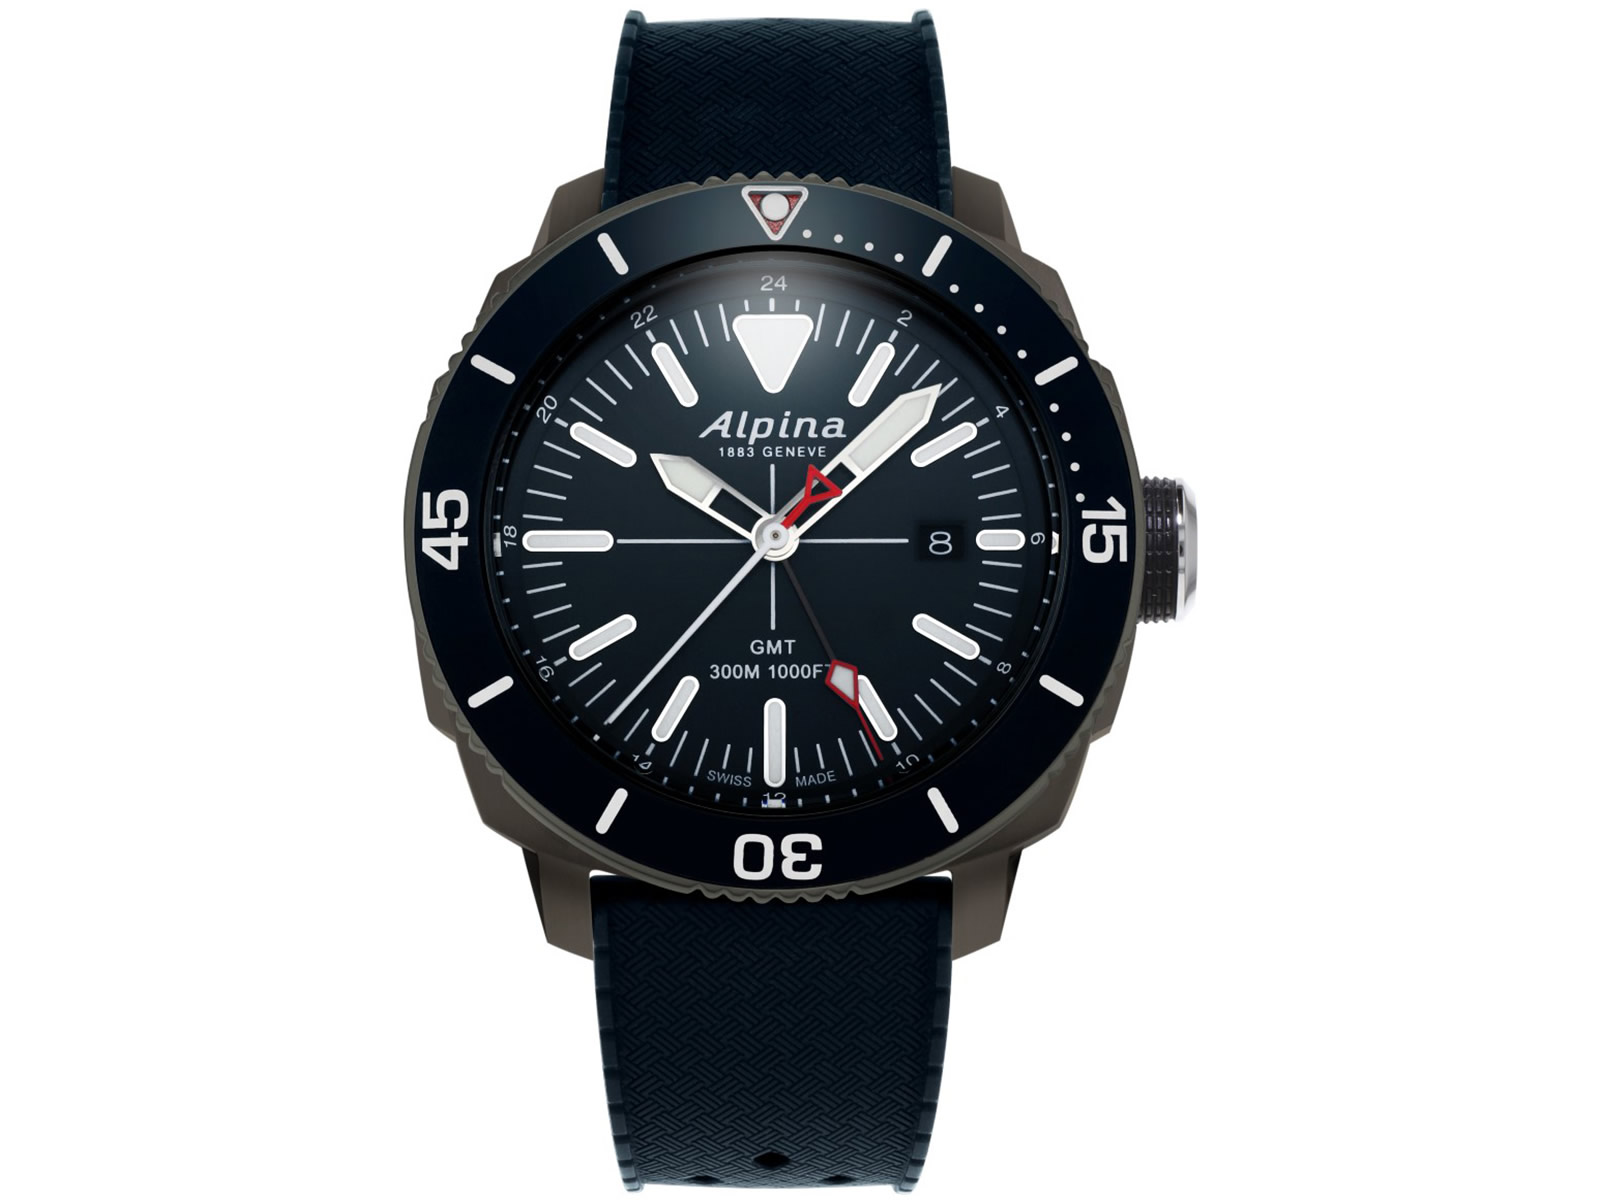 alpina-seastrong-diver-gmt-quartz-5-.jpg